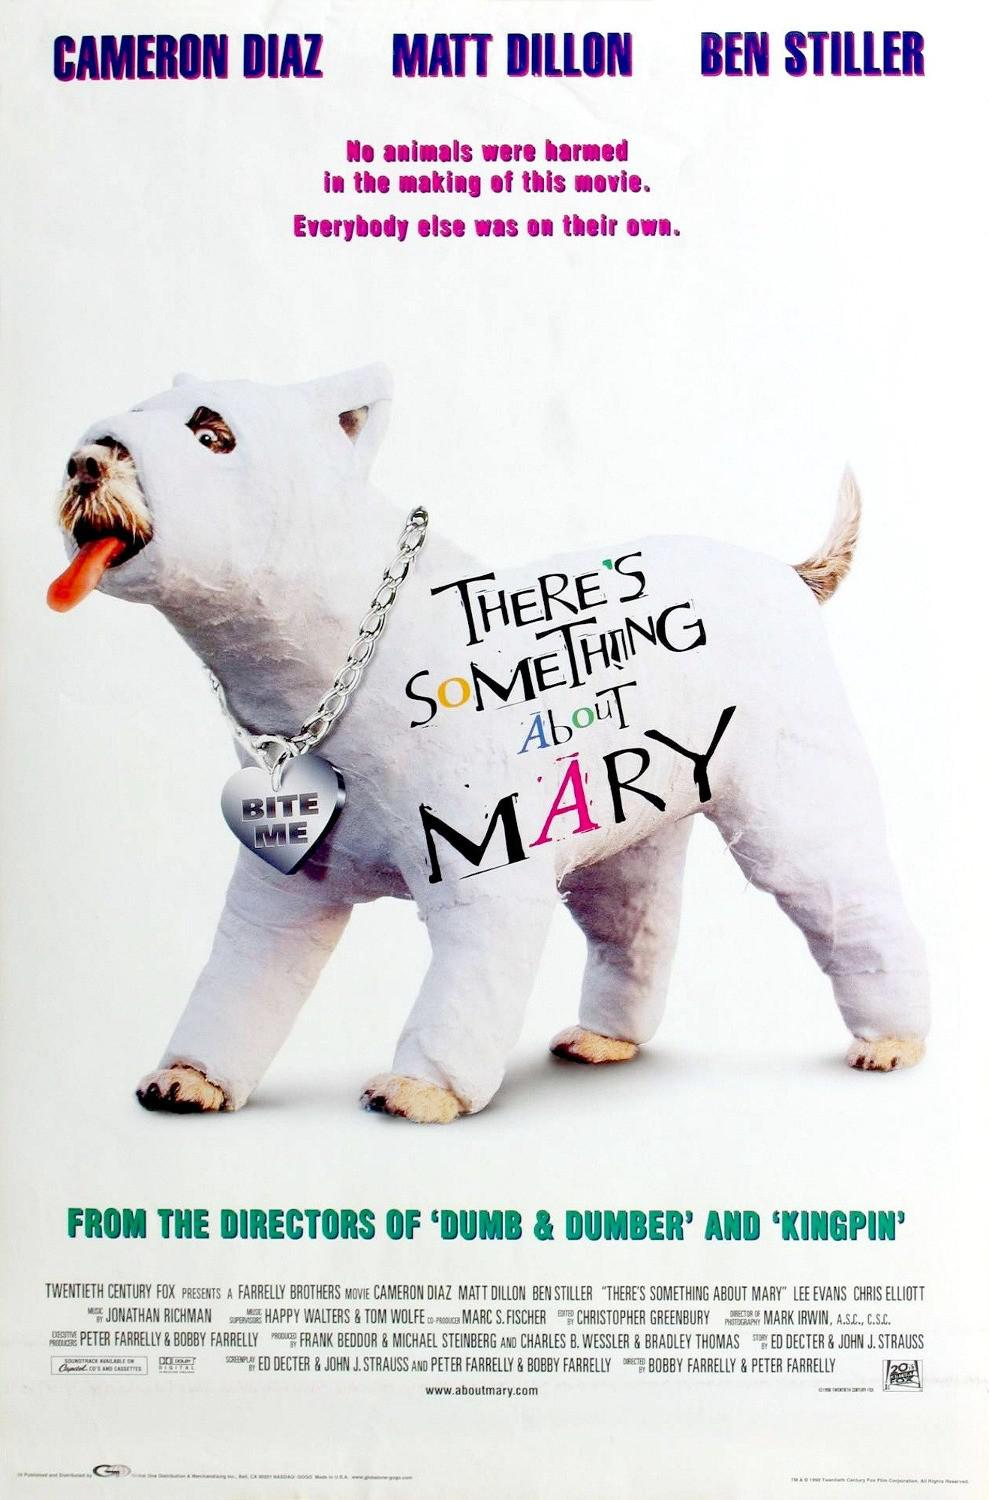 Tutti Pazzi per Mary - Theres something about Mary - Cameron Diaz - Matt Dillon - Ben Stiller - poster